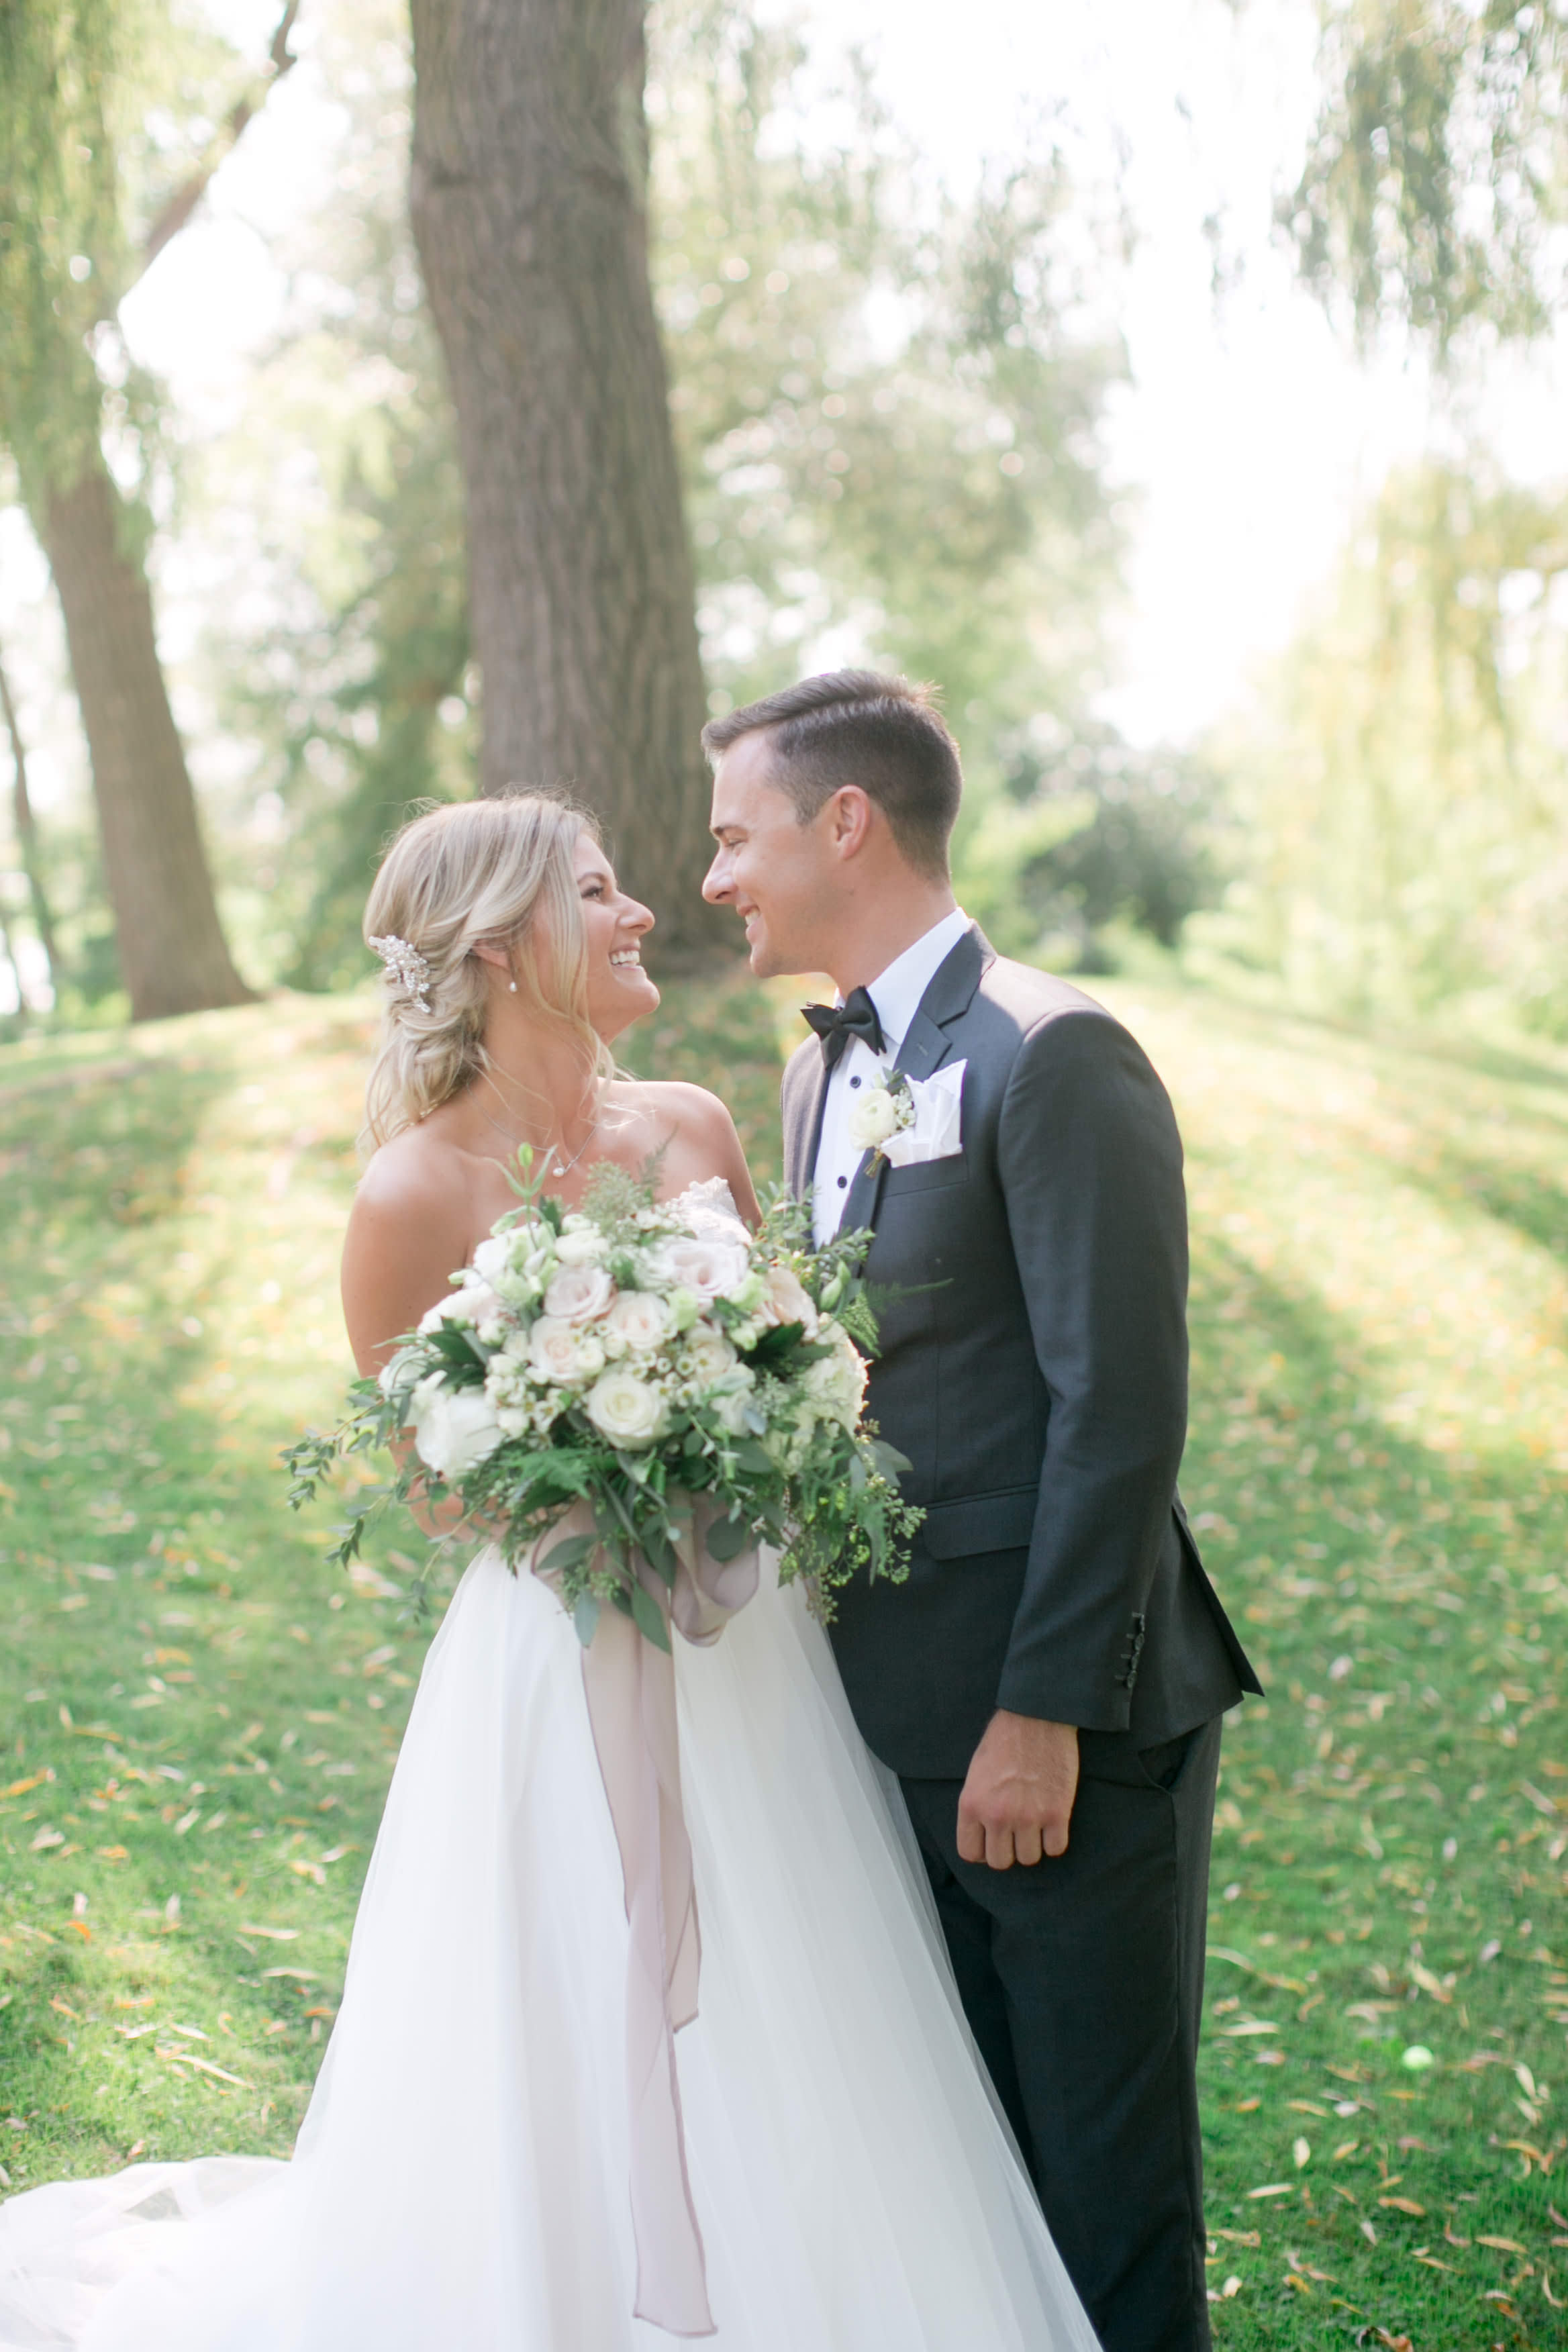 Kelsey___Daniel___High_Res_Finals___Daniel_Ricci_Weddings_172.jpg